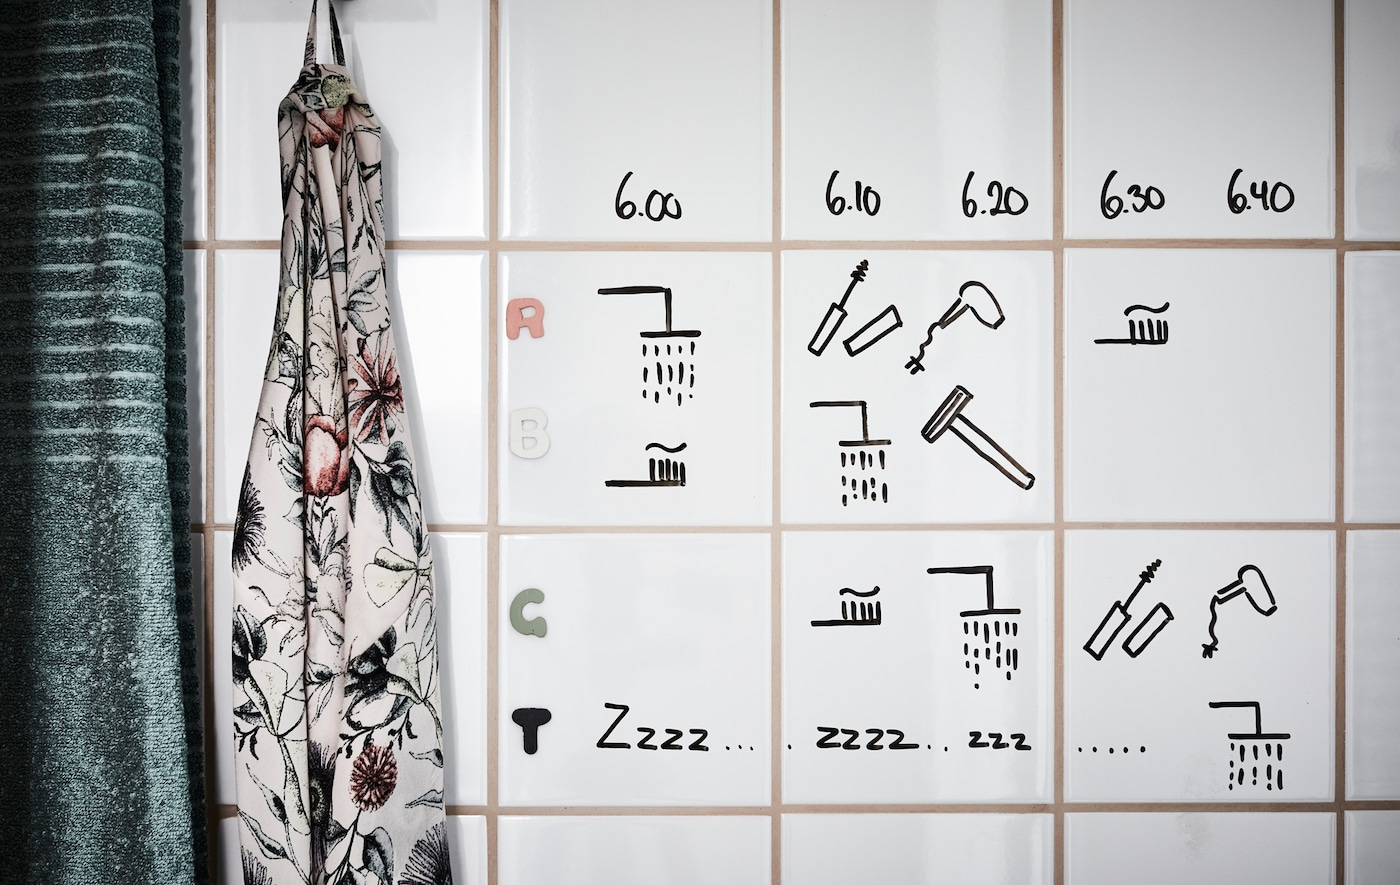 There are ways to avoid the bathroom traffic jam. Why not a personalized schedule written on the bathroom tiles?